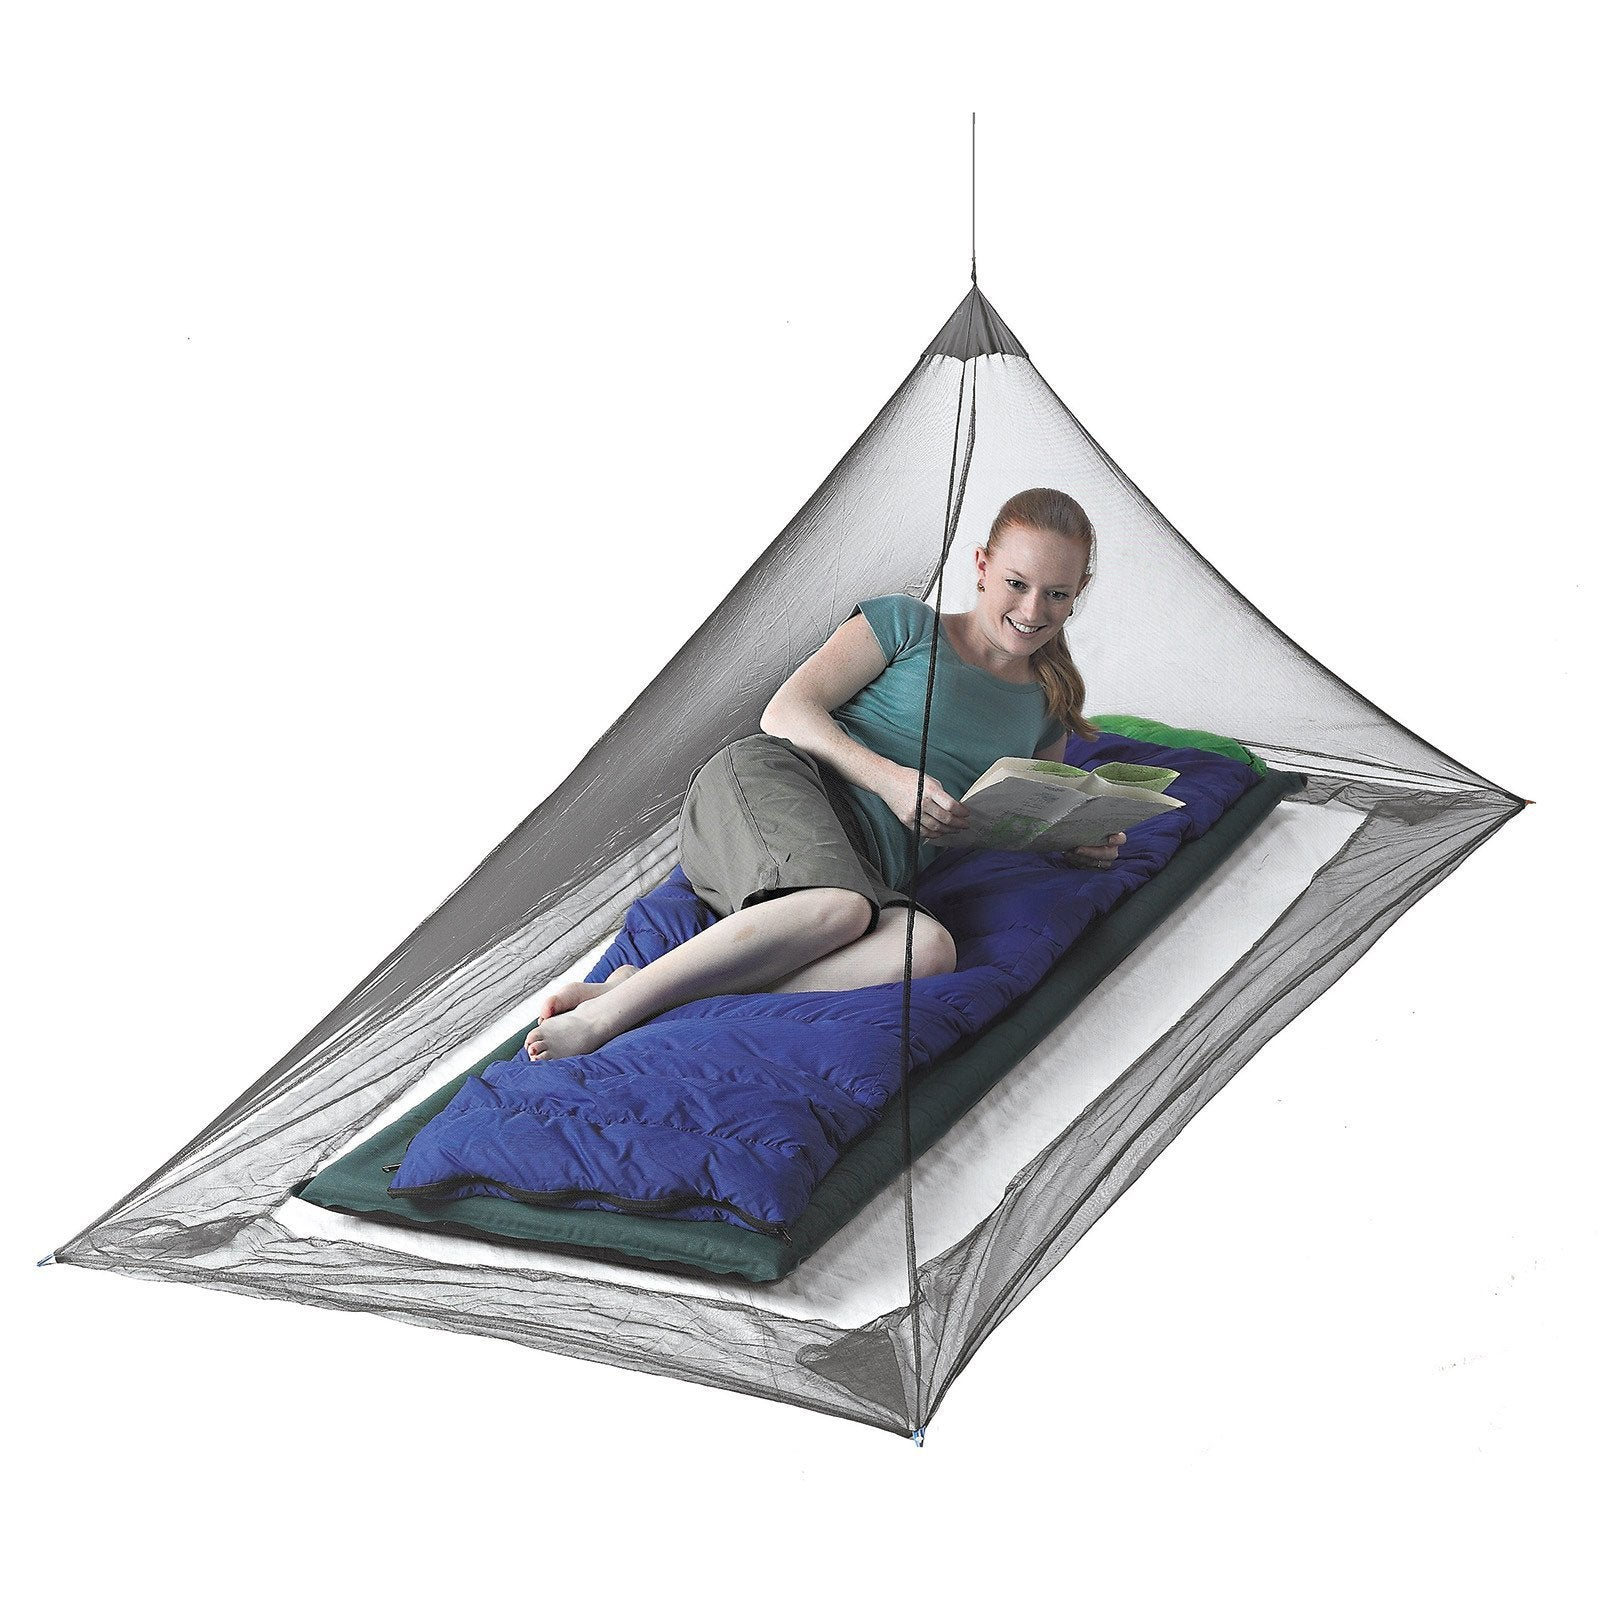 Sea to Summit Nano Mosquito Pyramid Net Single, showing lady inside on a single mattress